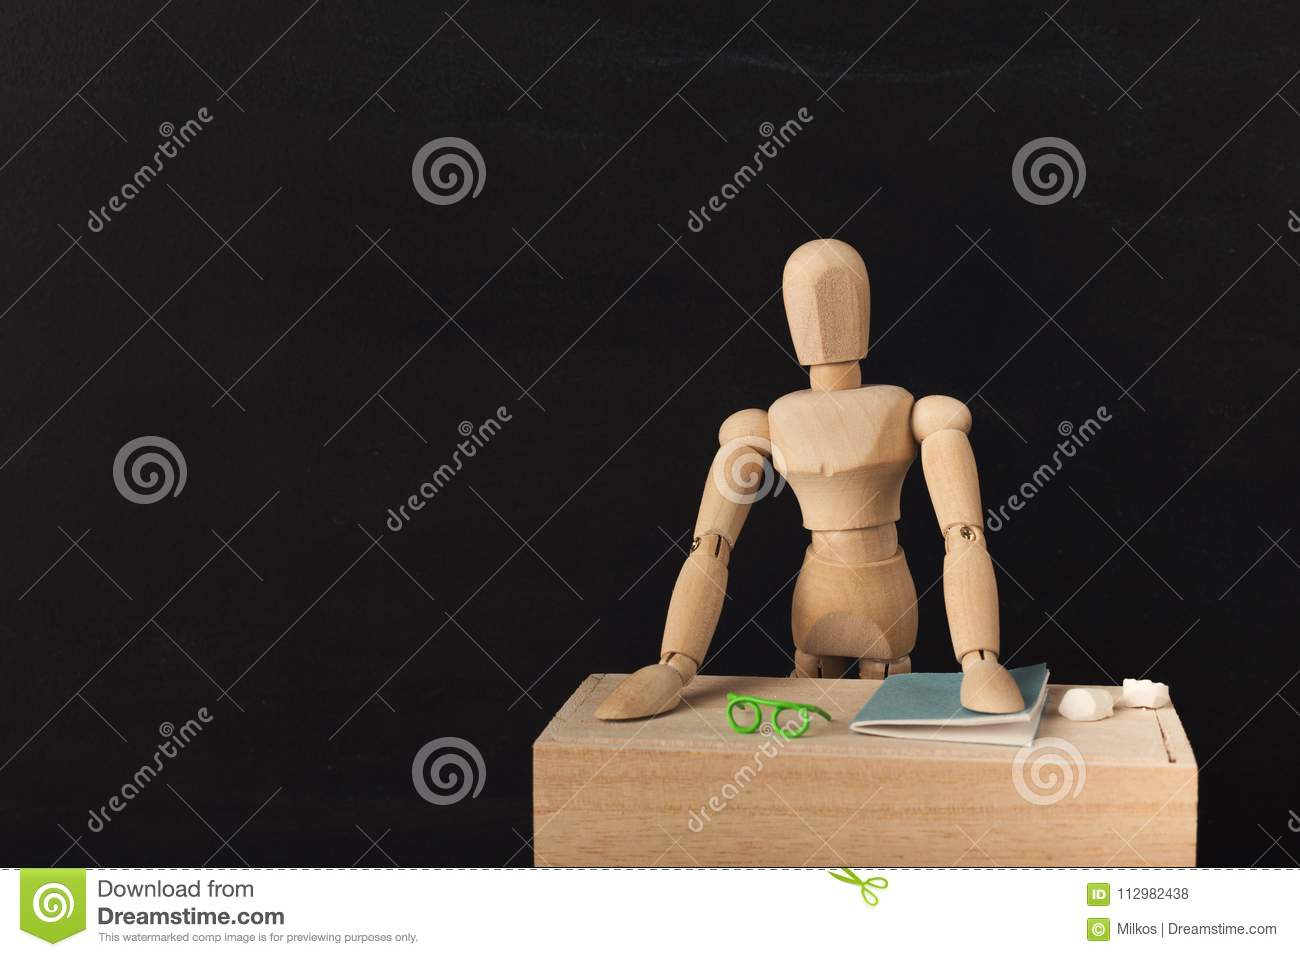 Wooden figure at workplace against black background